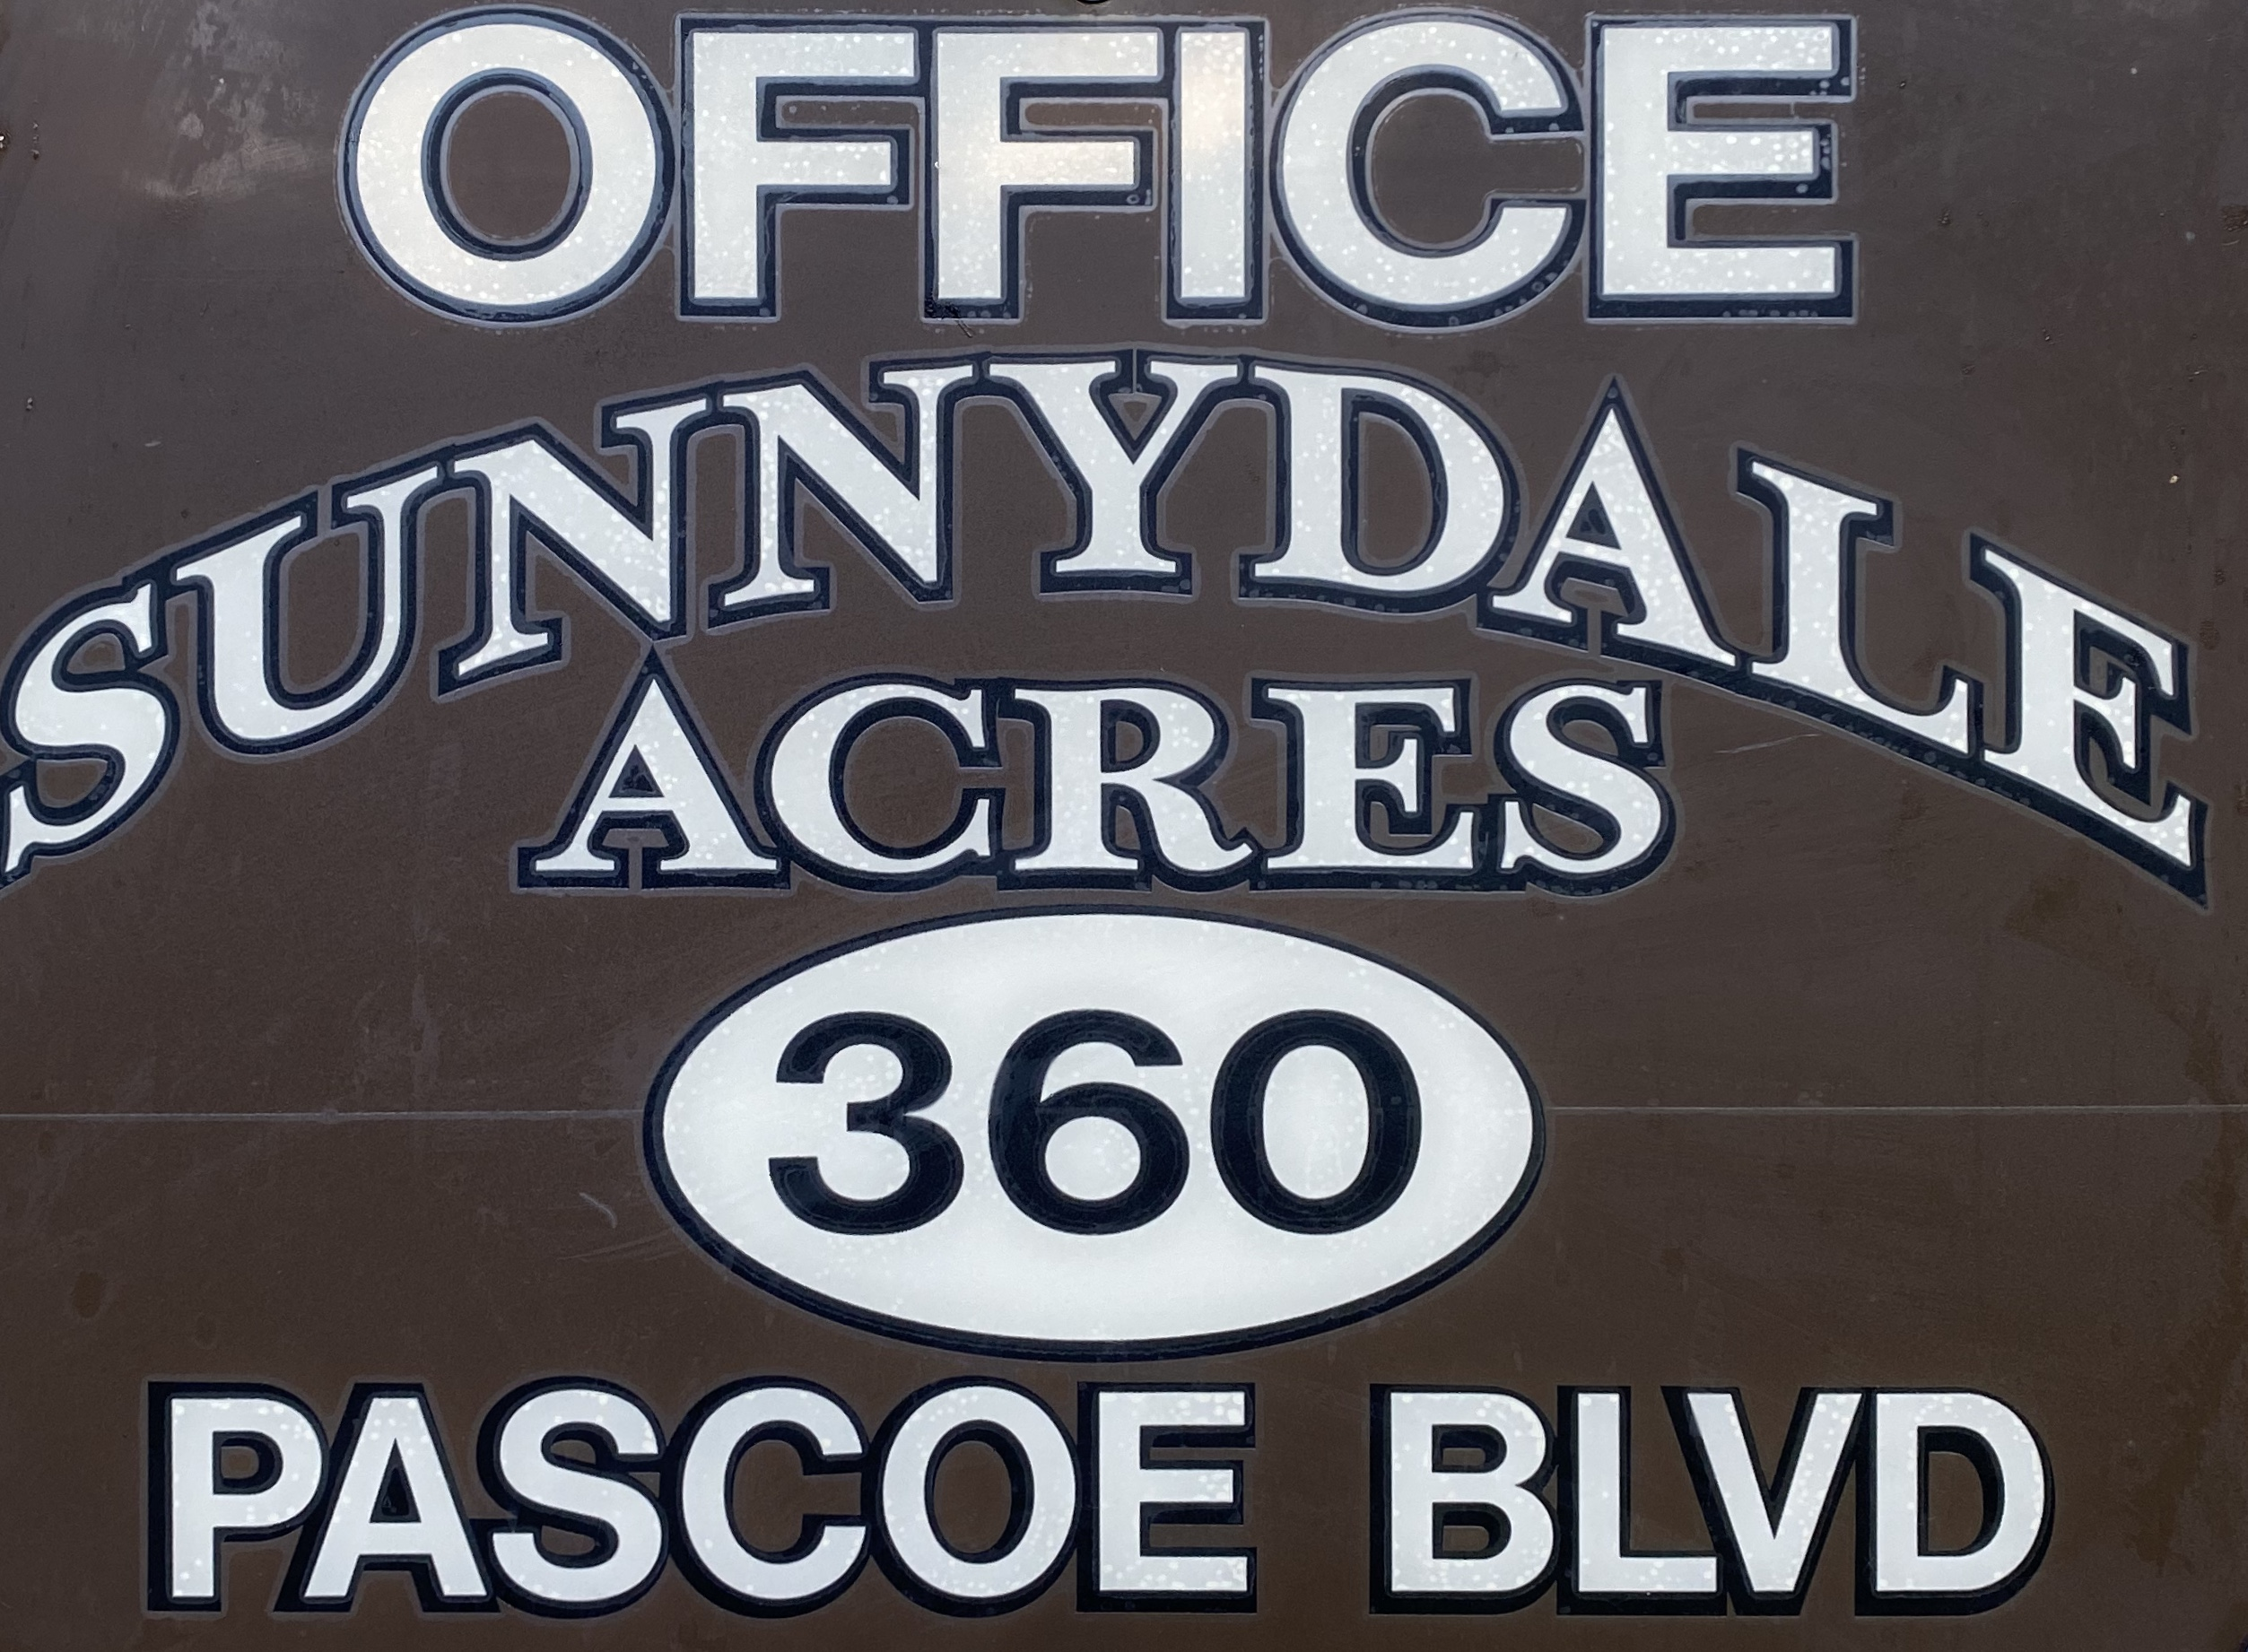 Sunnydale Acres